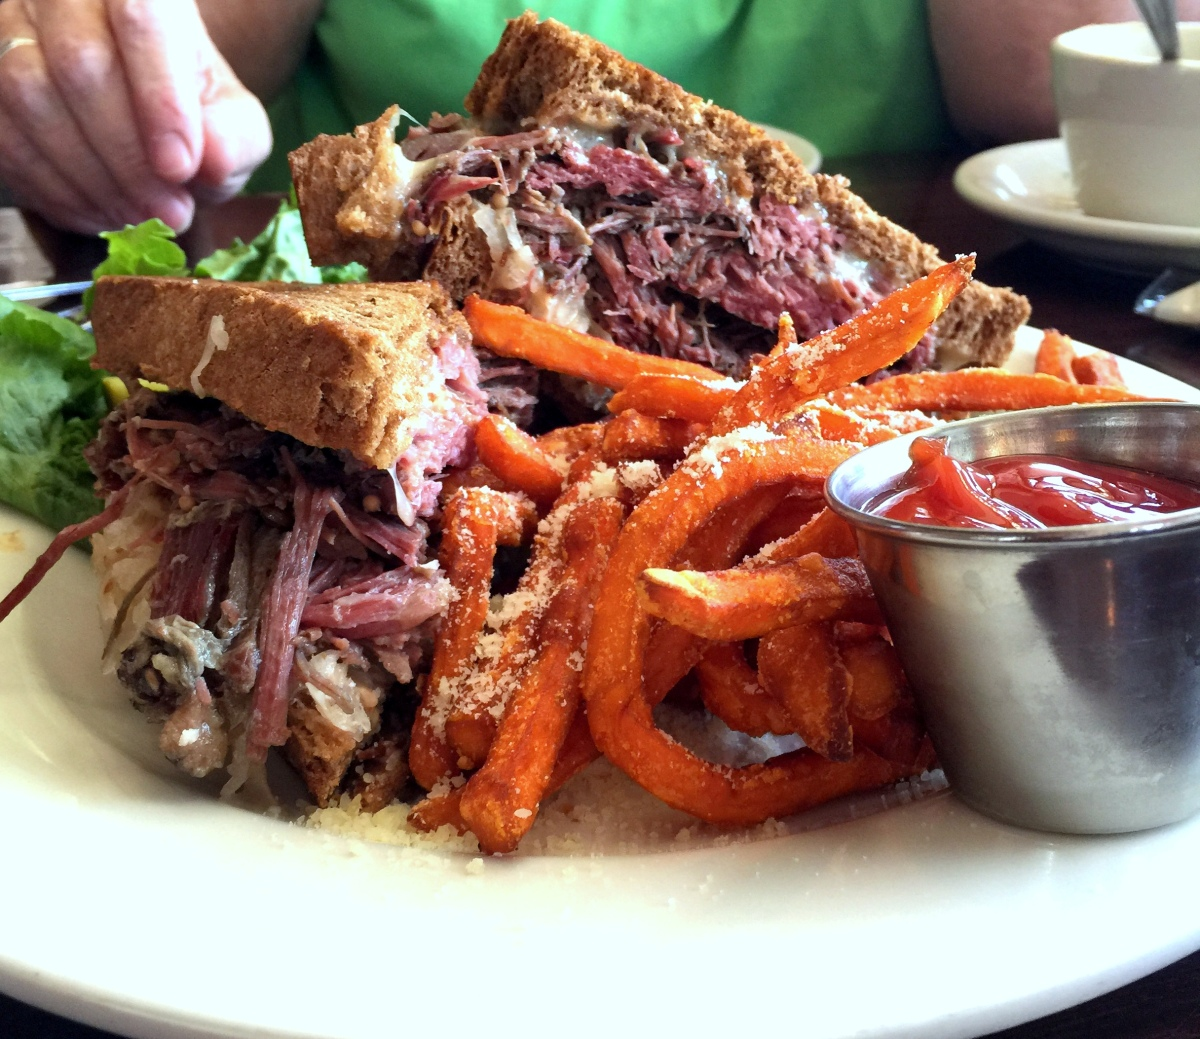 The Best (so far) Reuben we ate in SE Wisconsin was....